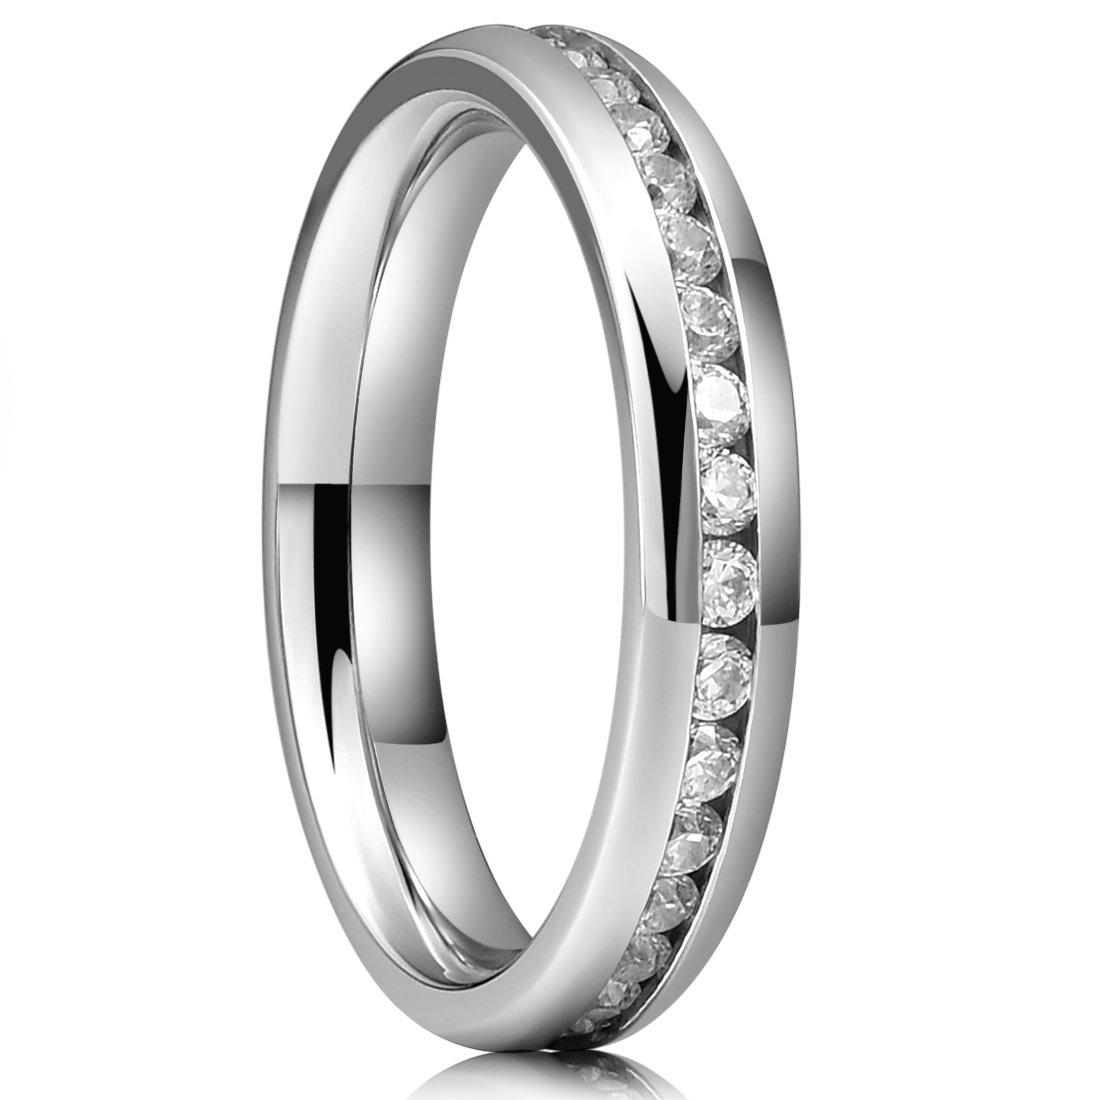 Three Keys Jewelry 4mm Womens Titanium Wedding Ring Polished with 1.5mm Cubic Zirecon CZ Inlay Wedding Band Engagement Ring Size 5.5